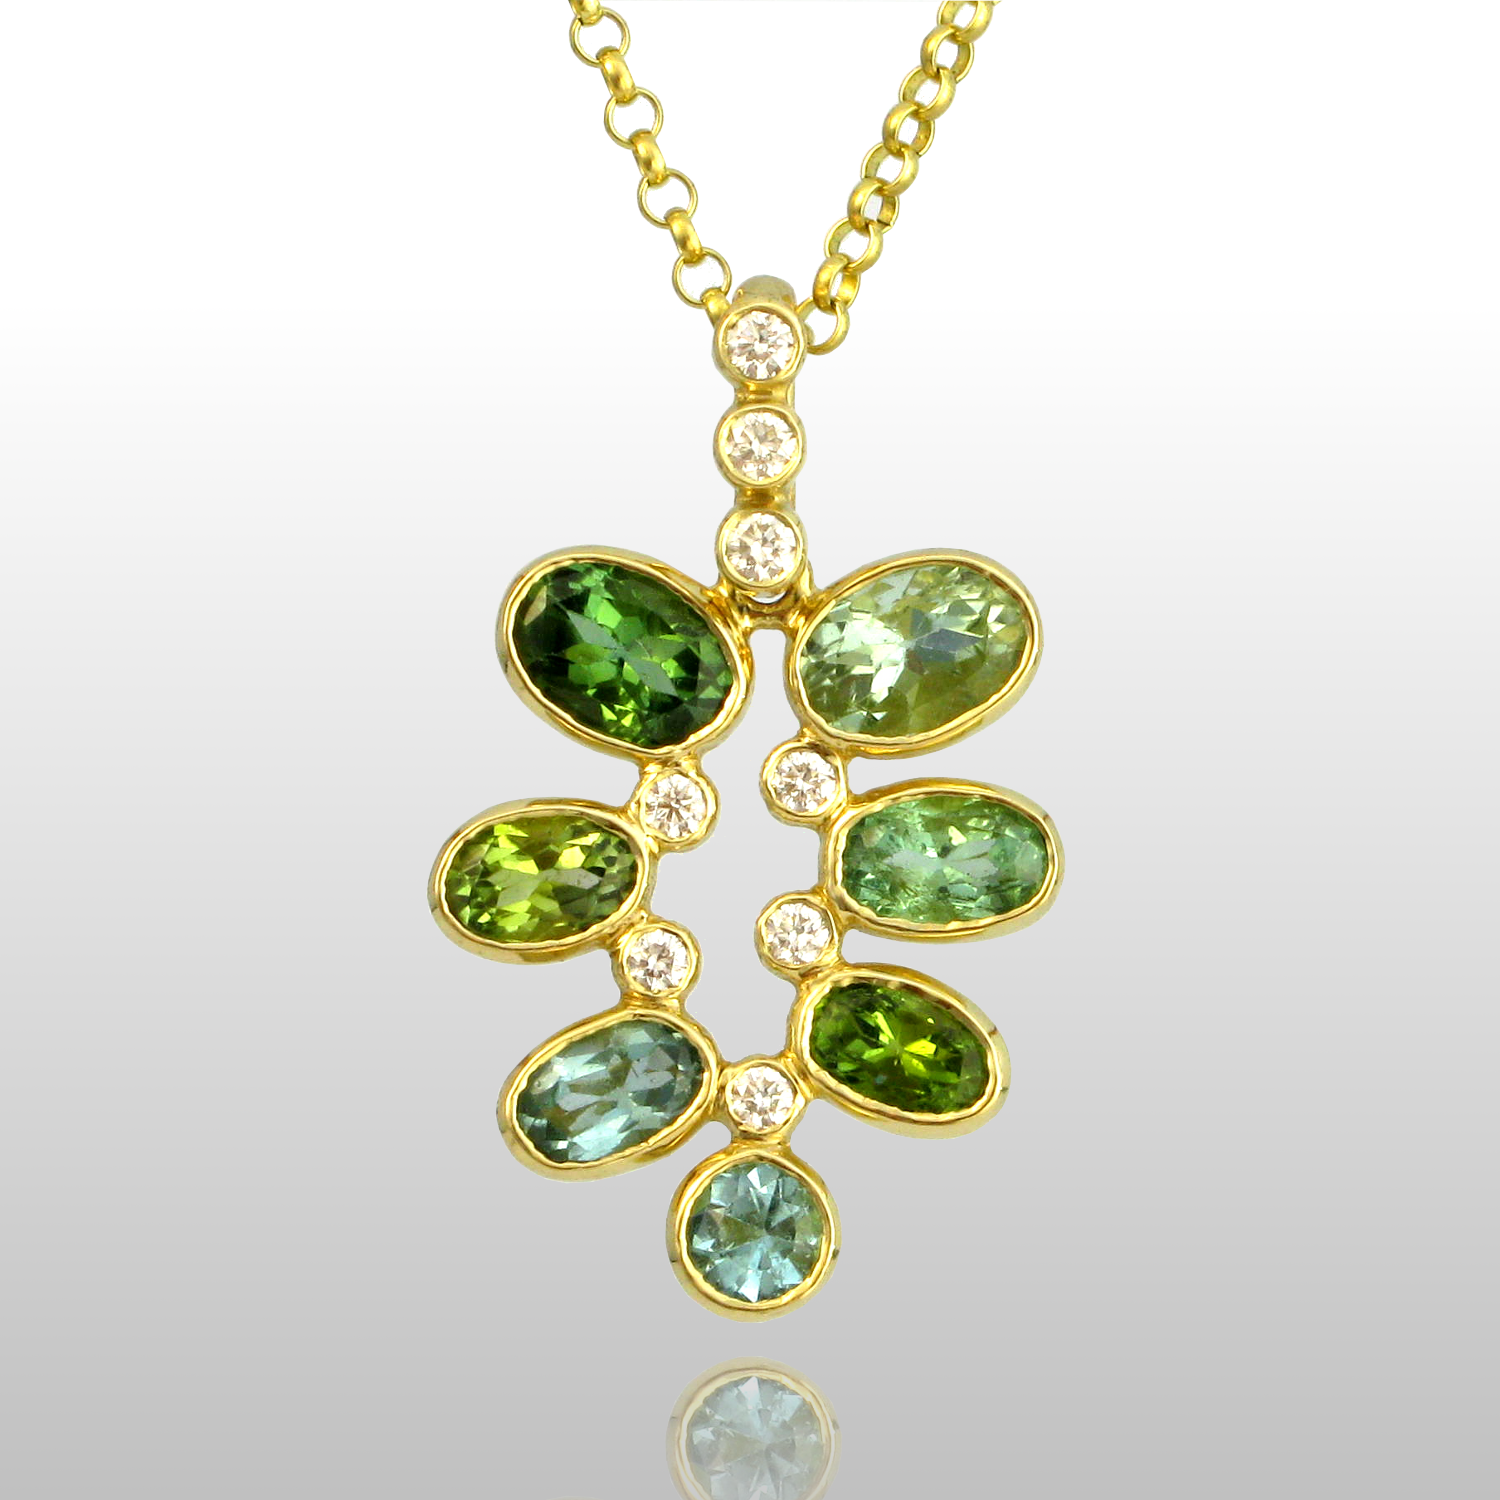 Pendant 'Kaleidoscope' in 18k Gold with Green Tourmalines and Diamonds by Pratima Design Fine Art Jewelry